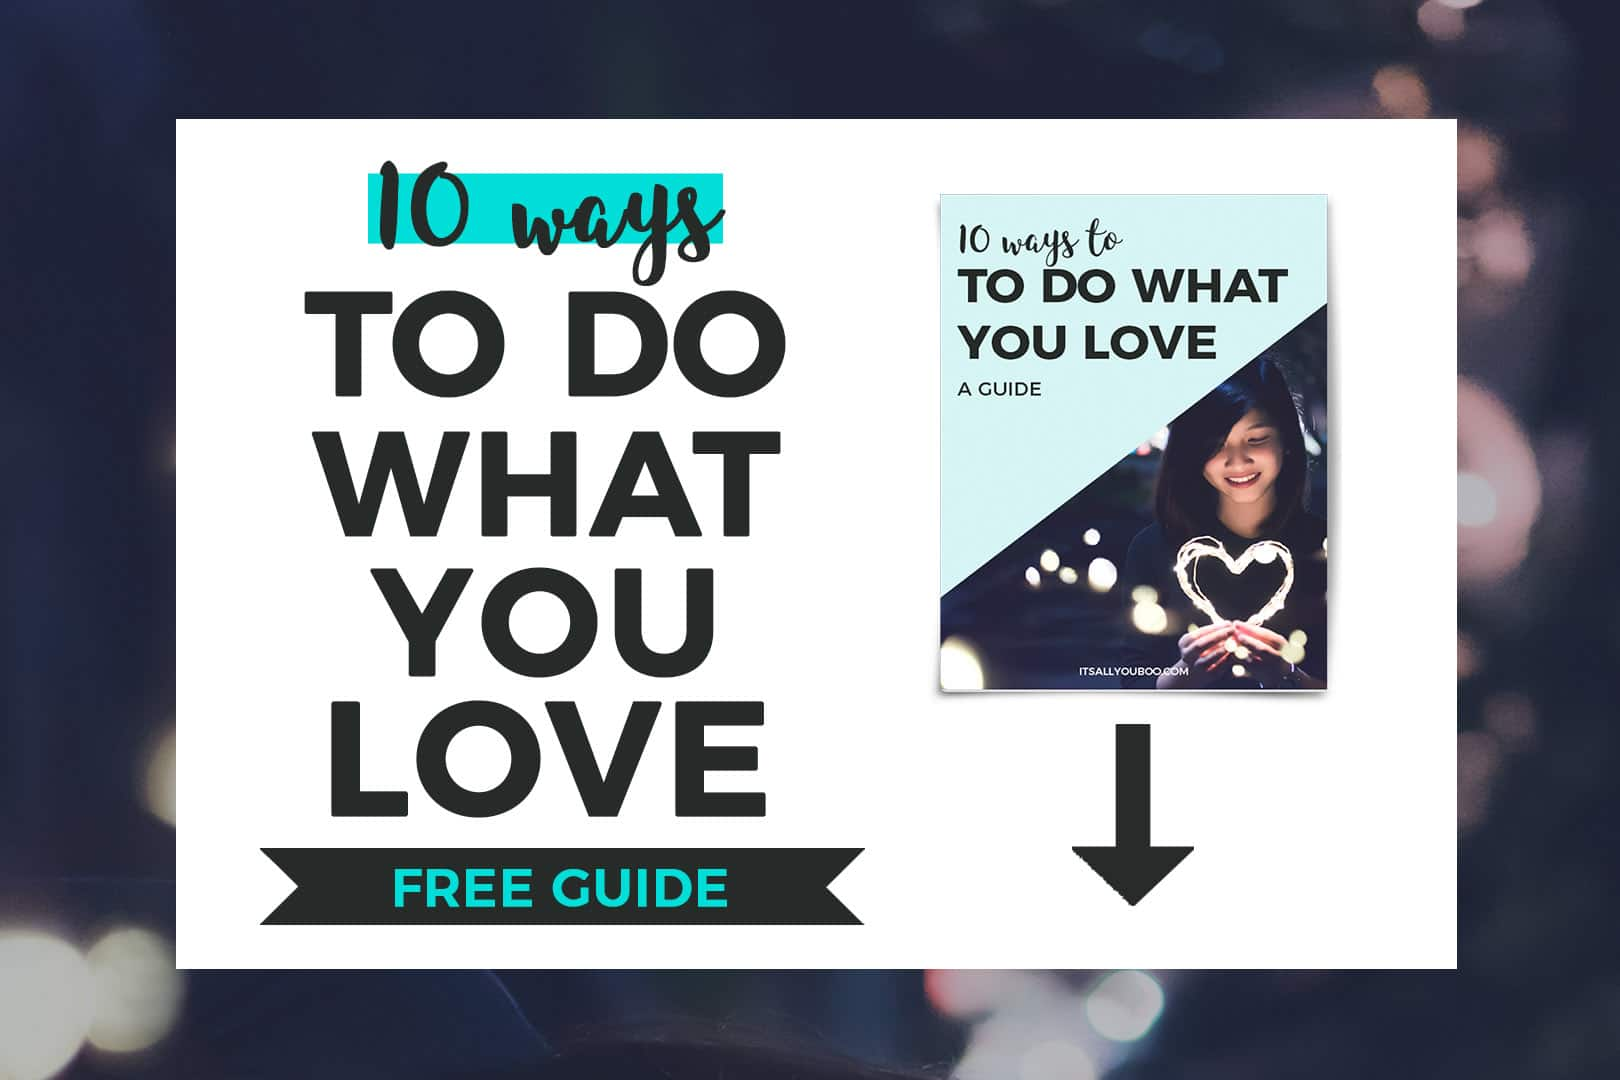 10 Ways to Do what you love Free Guide, It's All You Boo